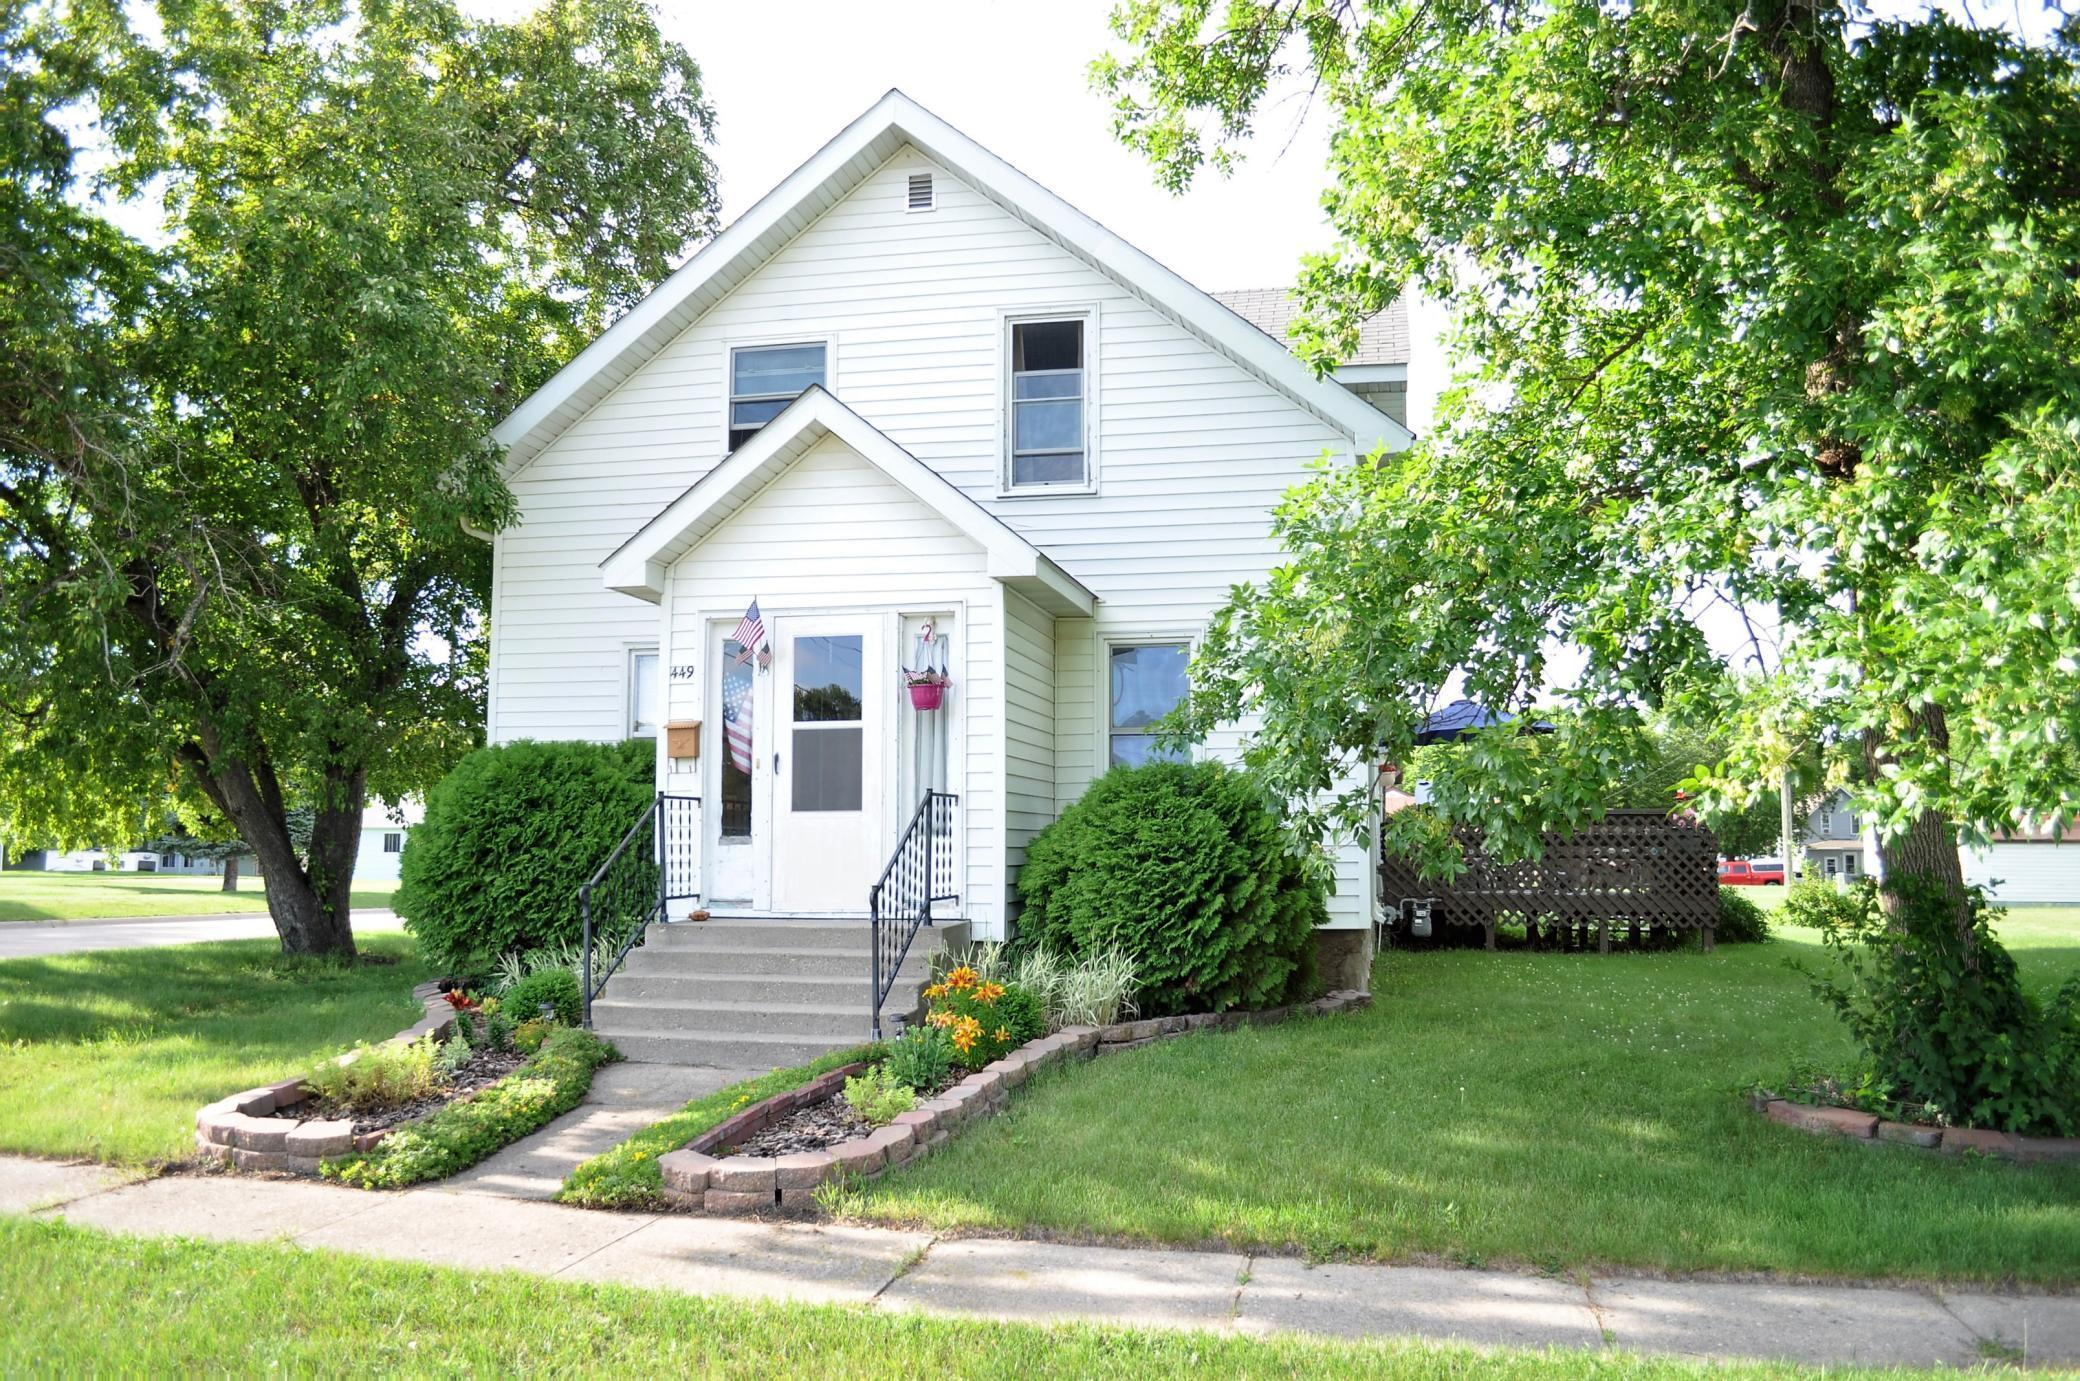 449 Rooney Property Photo - Appleton, MN real estate listing